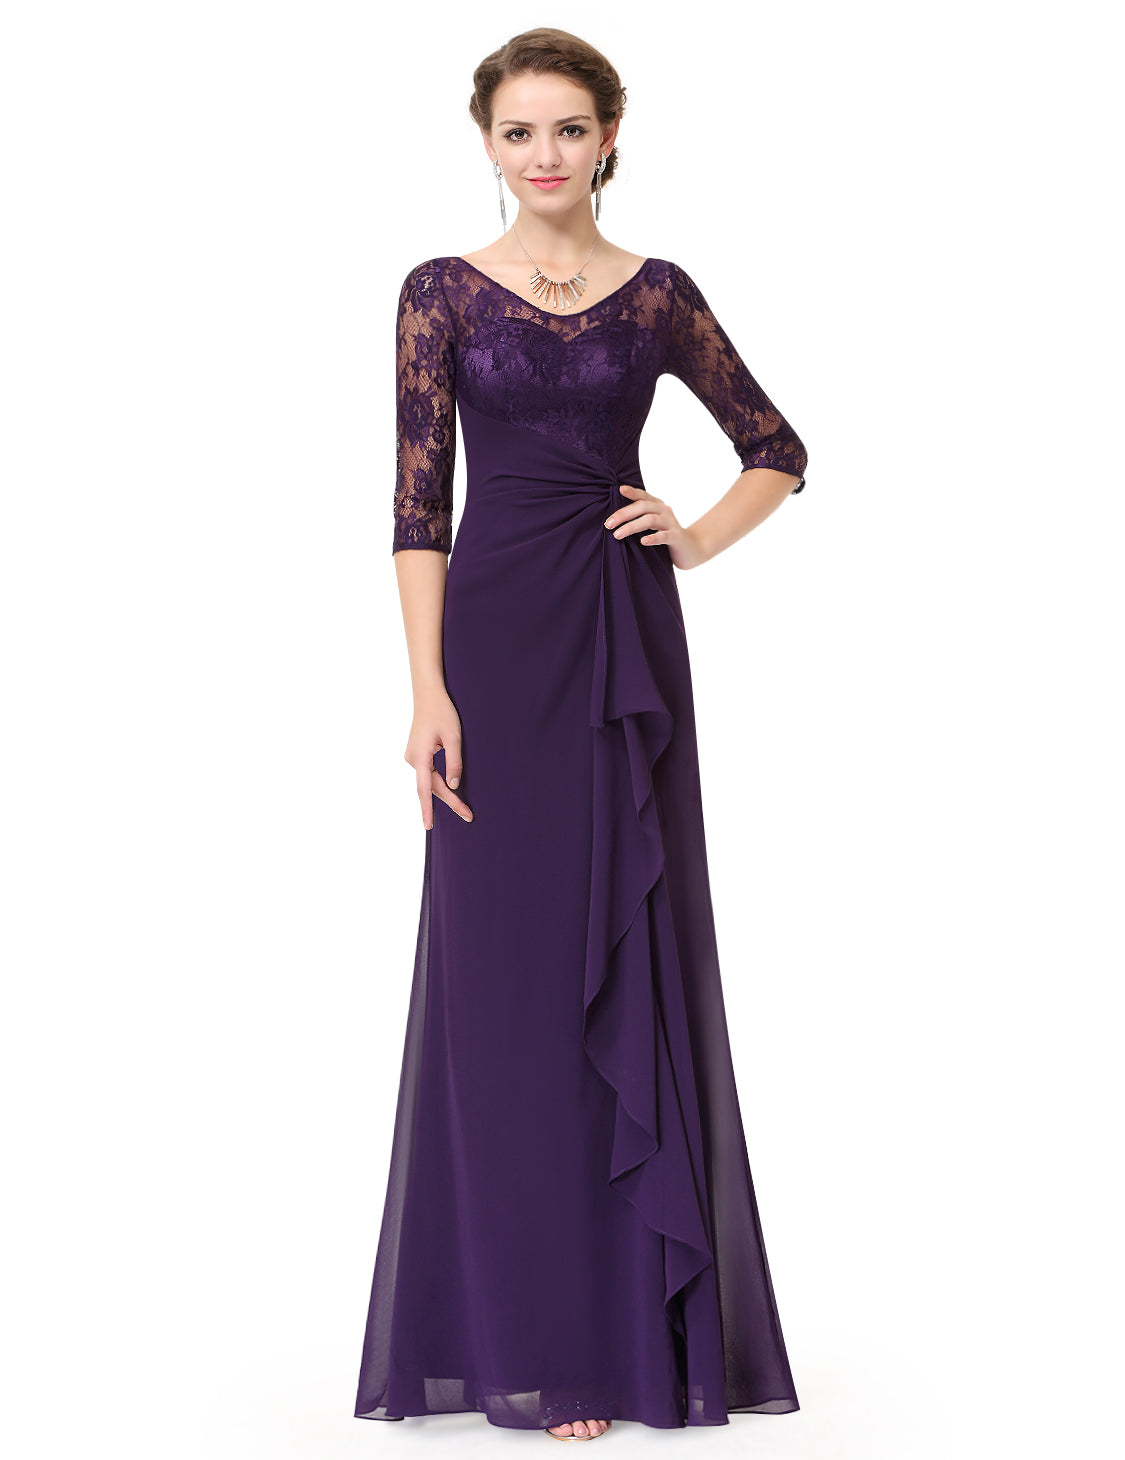 Obeige Elegant Purple V-neck Half Sleeve Evening Party Dress